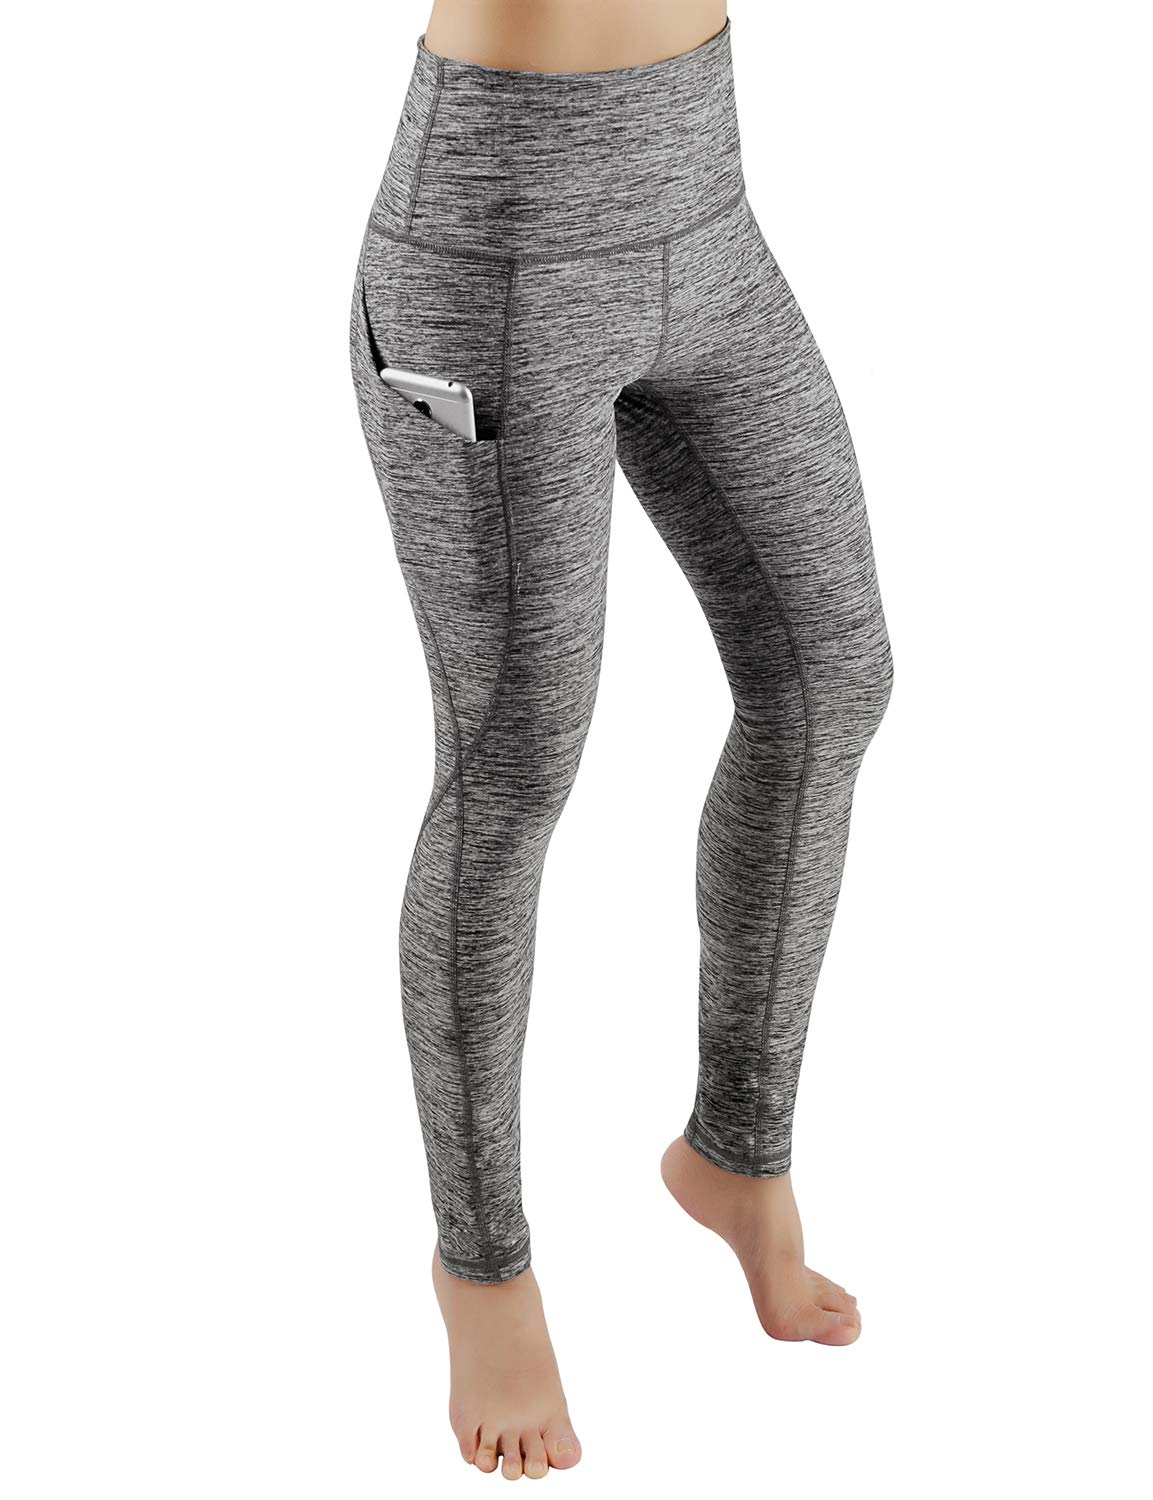 ODODOS Women's High Waist Yoga Pants with Pockets,Tummy Control,Workout Pants Running 4 Way Stretch Yoga Leggings with Pockets,GrayHeather,X-Large by ODODOS